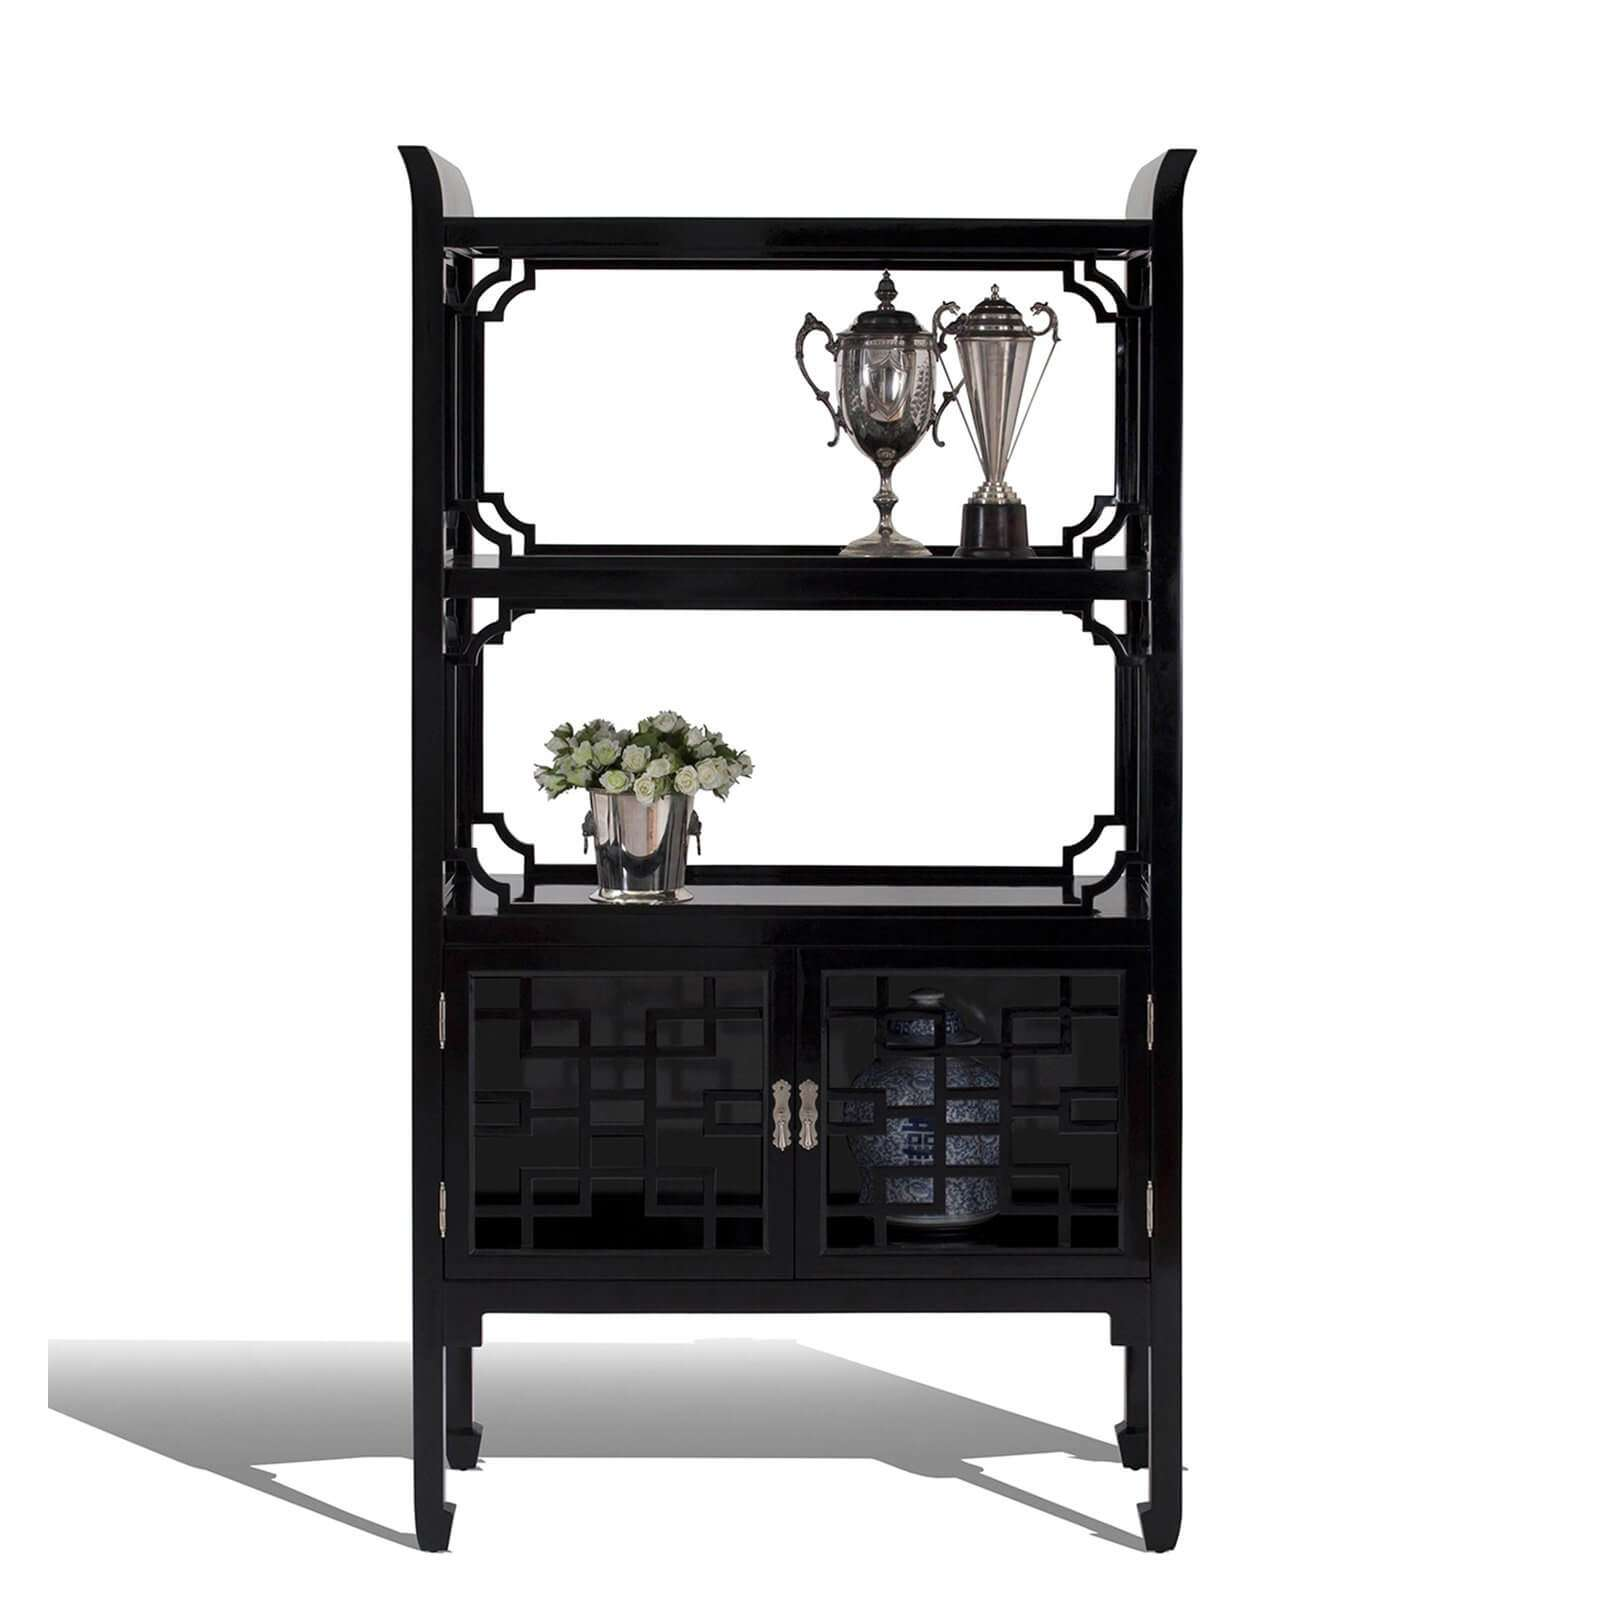 THE DYNASTY ETAGERE